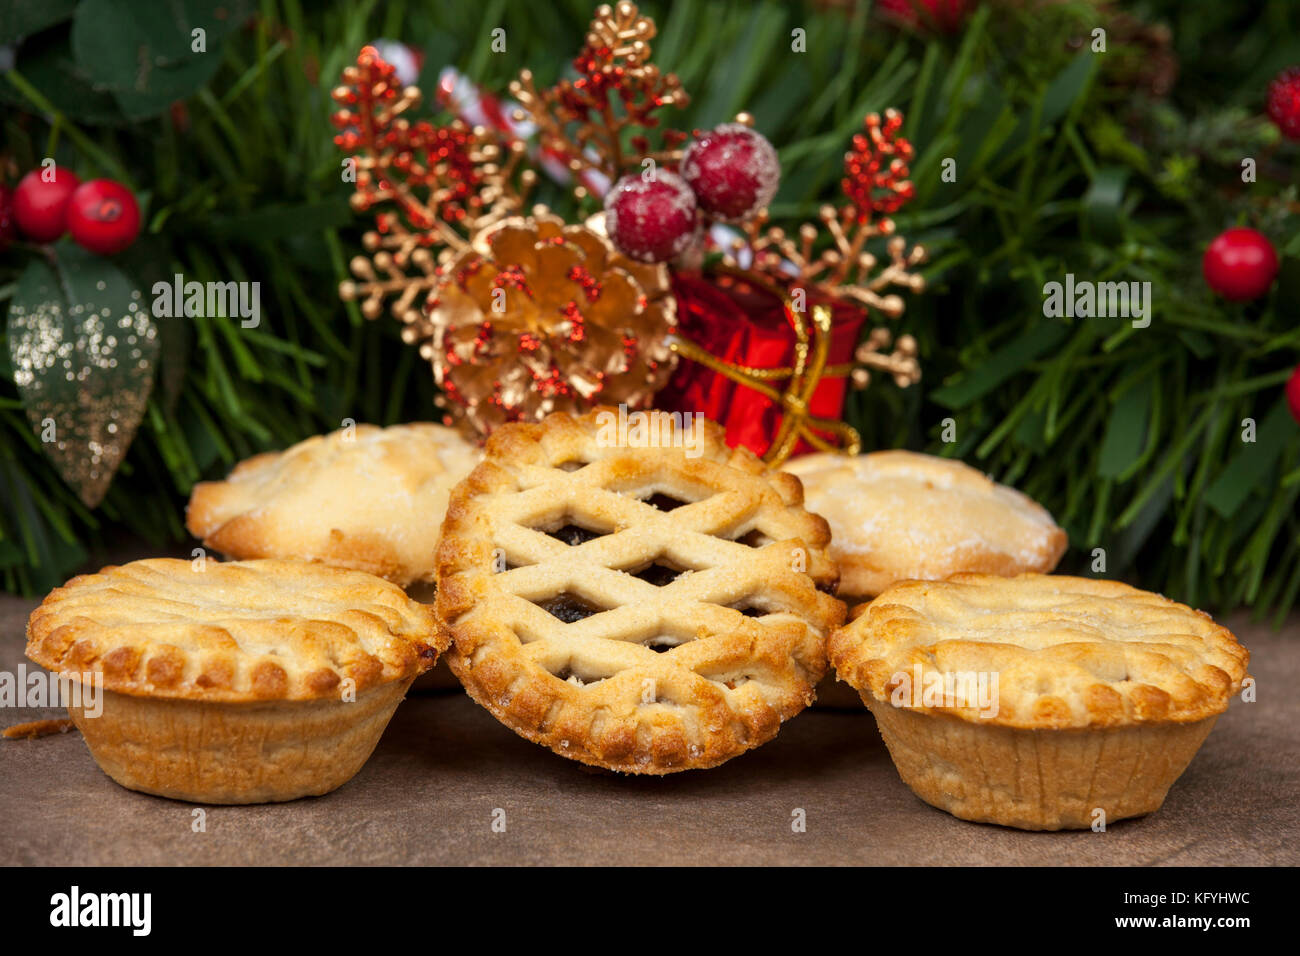 Selection of golden brown mince pies with festive christmas decorations in the background - Stock Image